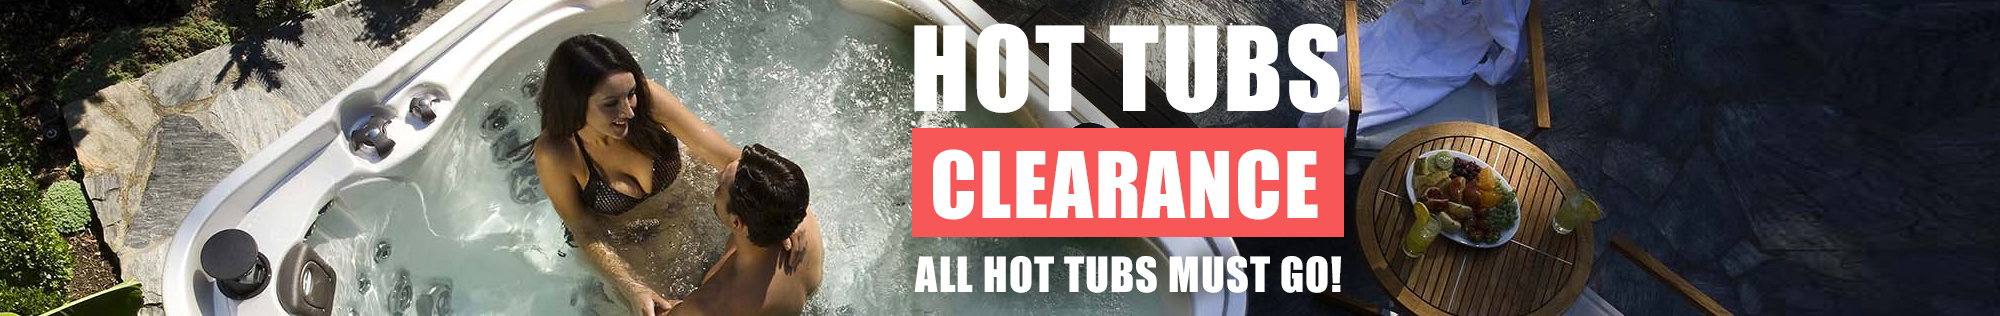 Hot Tubs Clearance - All hot tubs must go!